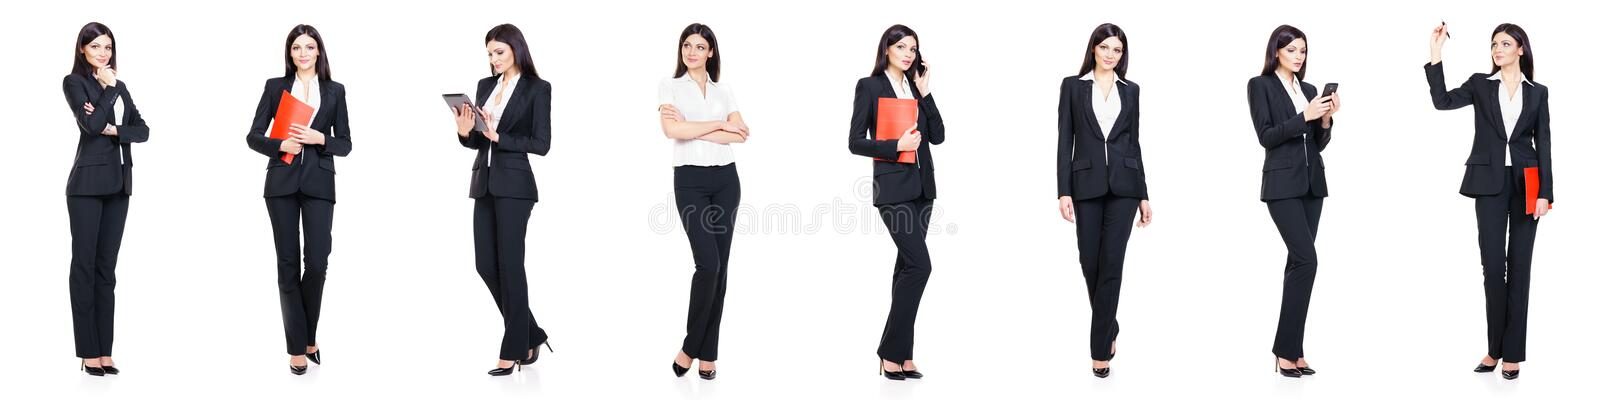 Set of beautiful, attractive businesswoman isolated on white. Business, career success concept. Set of attractive businesswoman isolated on white. Business royalty free stock image